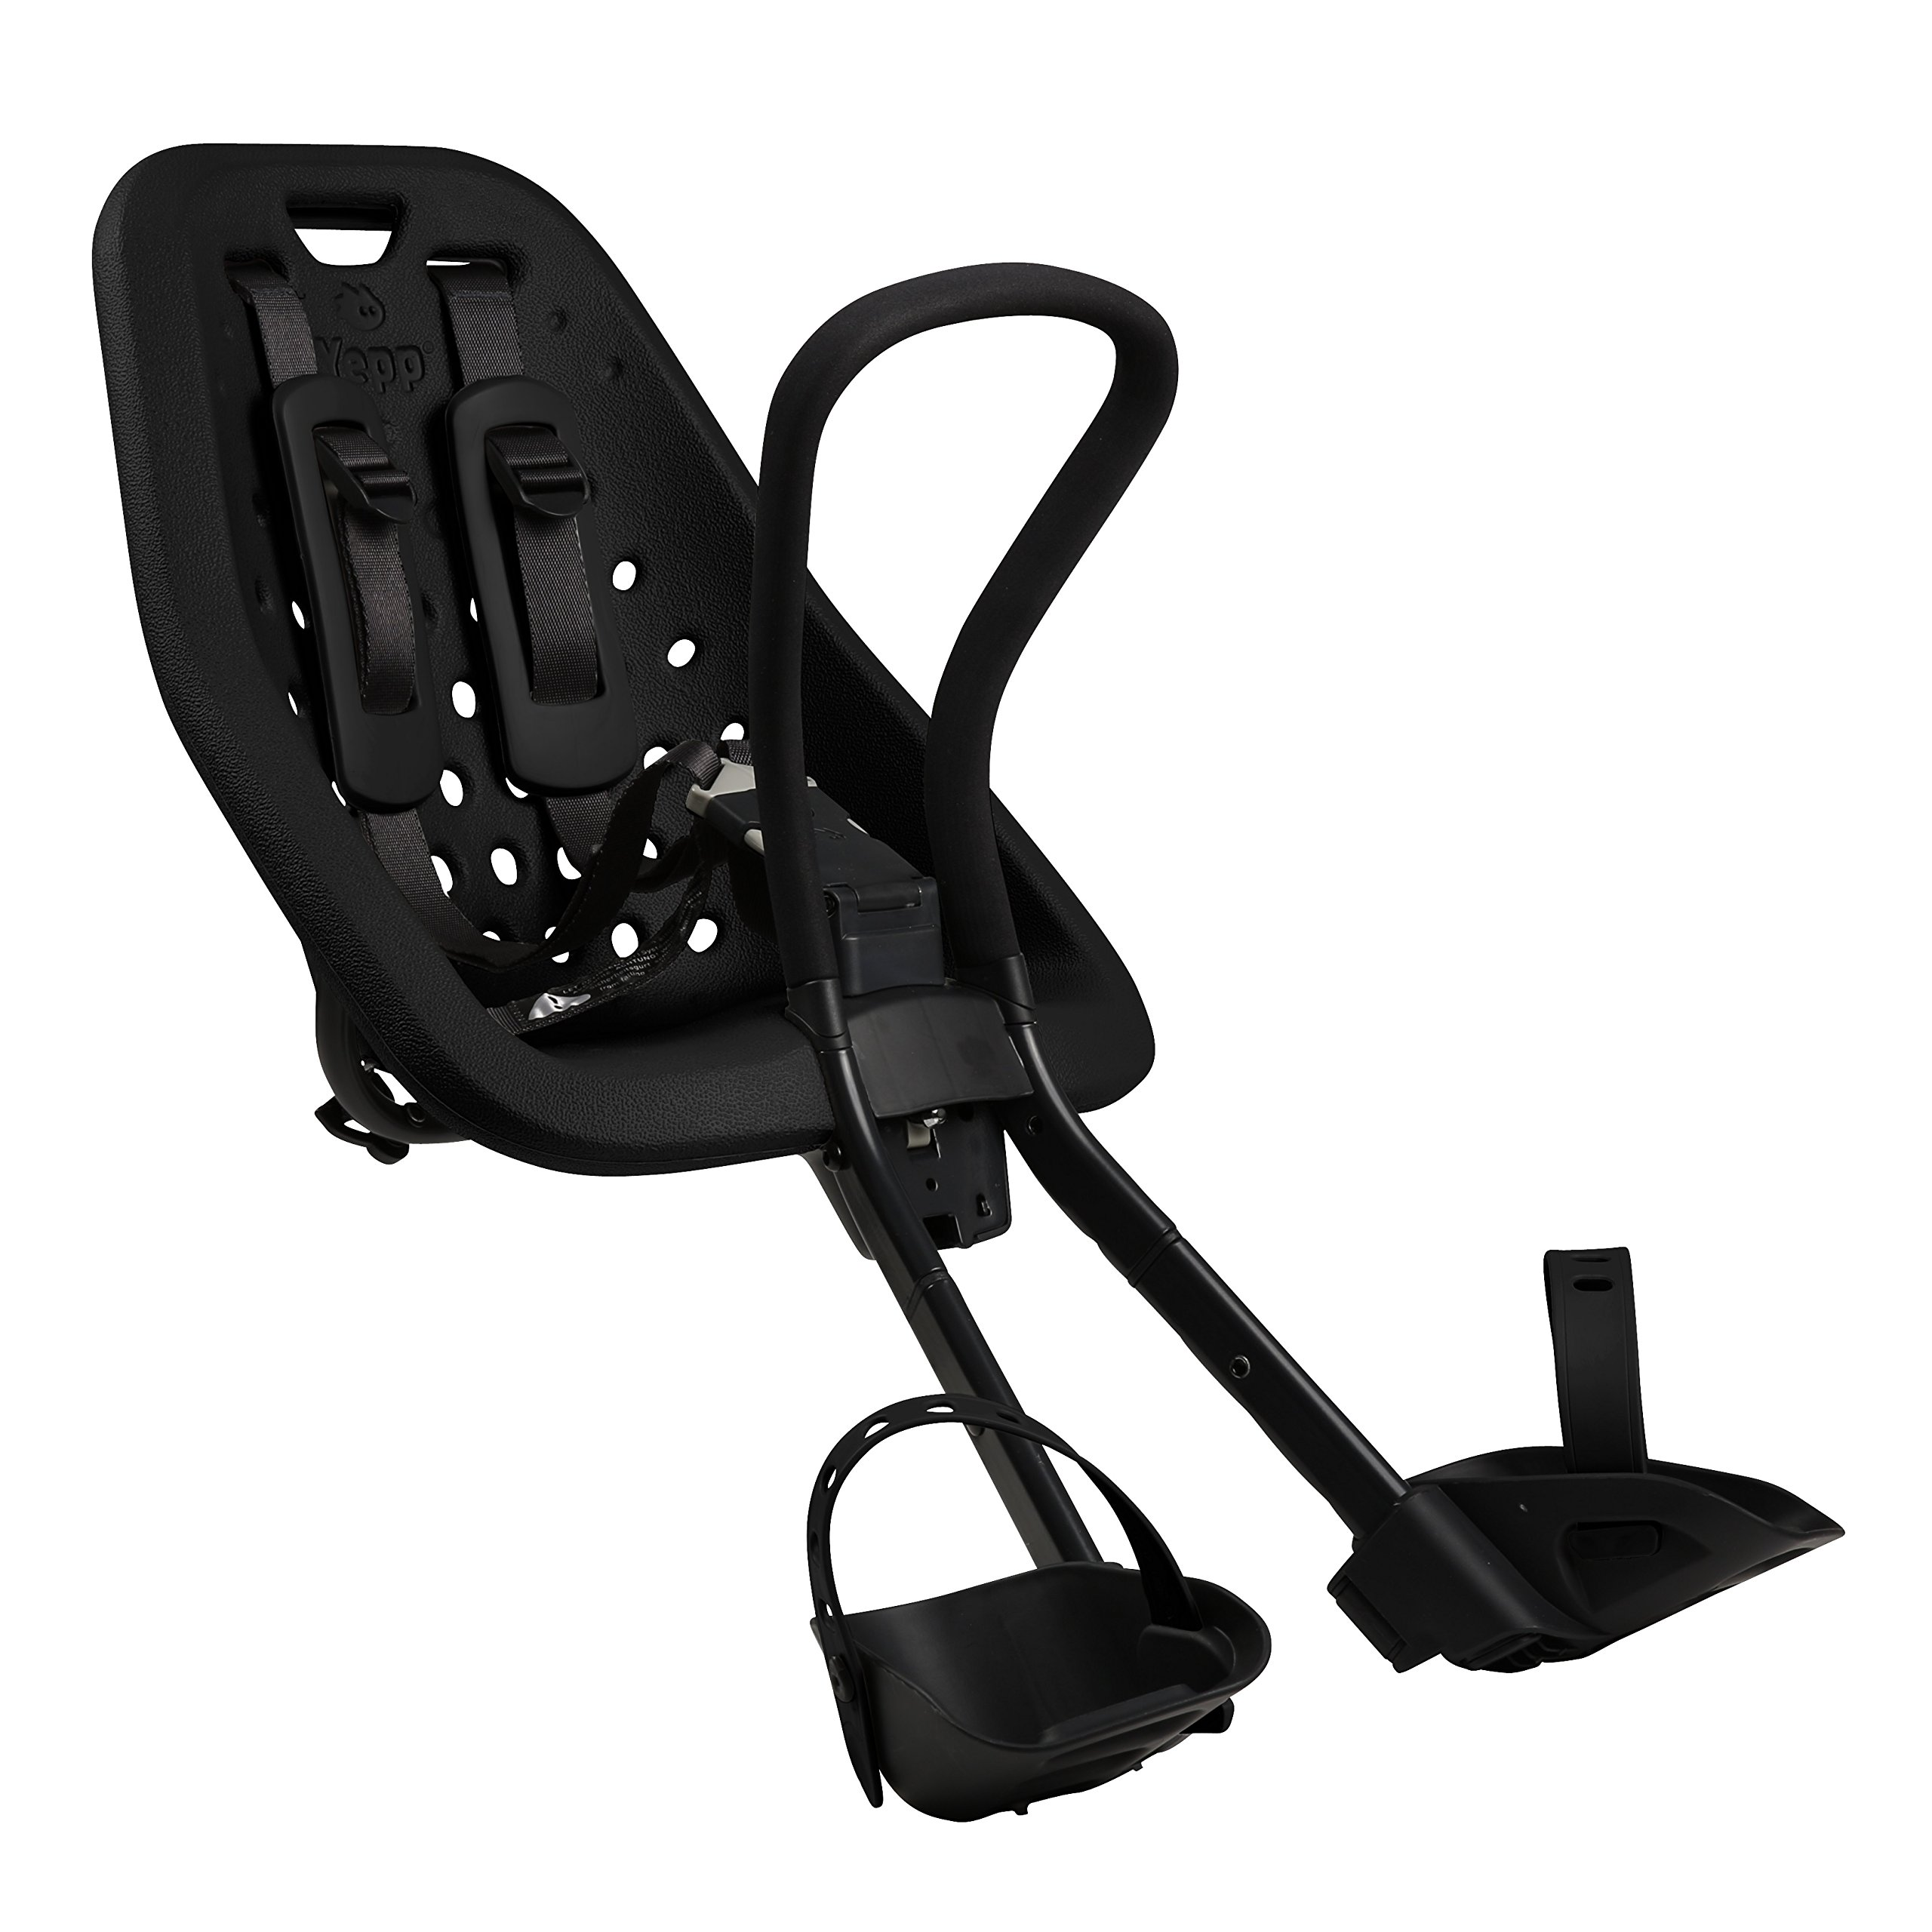 Thule Yepp Mini Bicycle Child Seat, Black by Yepp - GMG